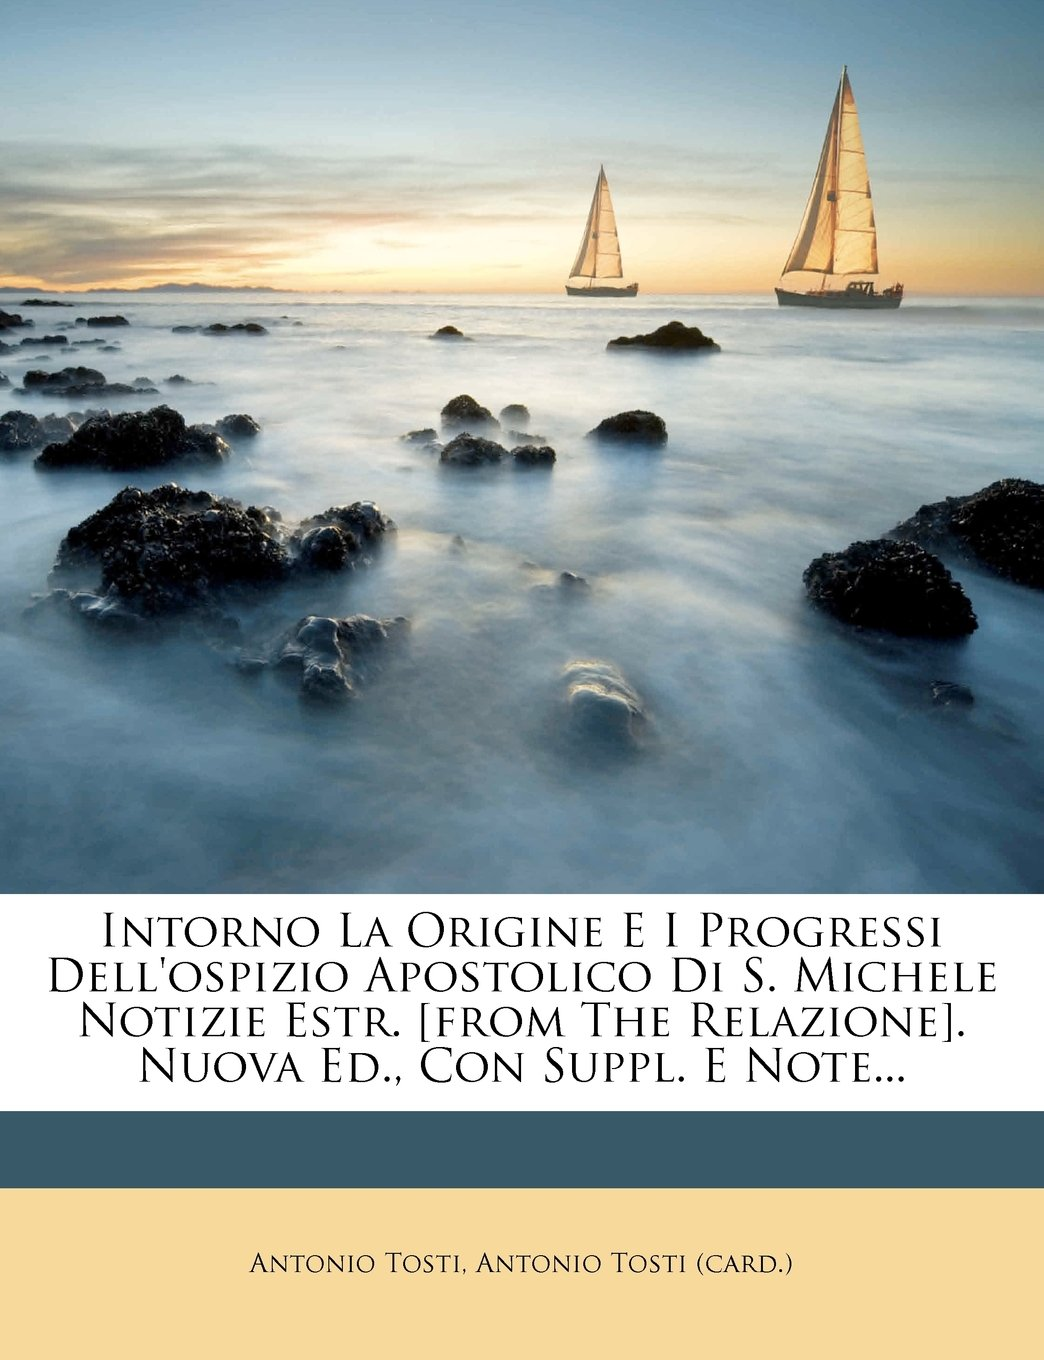 Download Intorno La Origine E I Progressi Dell'ospizio Apostolico Di S. Michele Notizie Estr. [from The Relazione]. Nuova Ed., Con Suppl. E Note... (Italian Edition) ebook